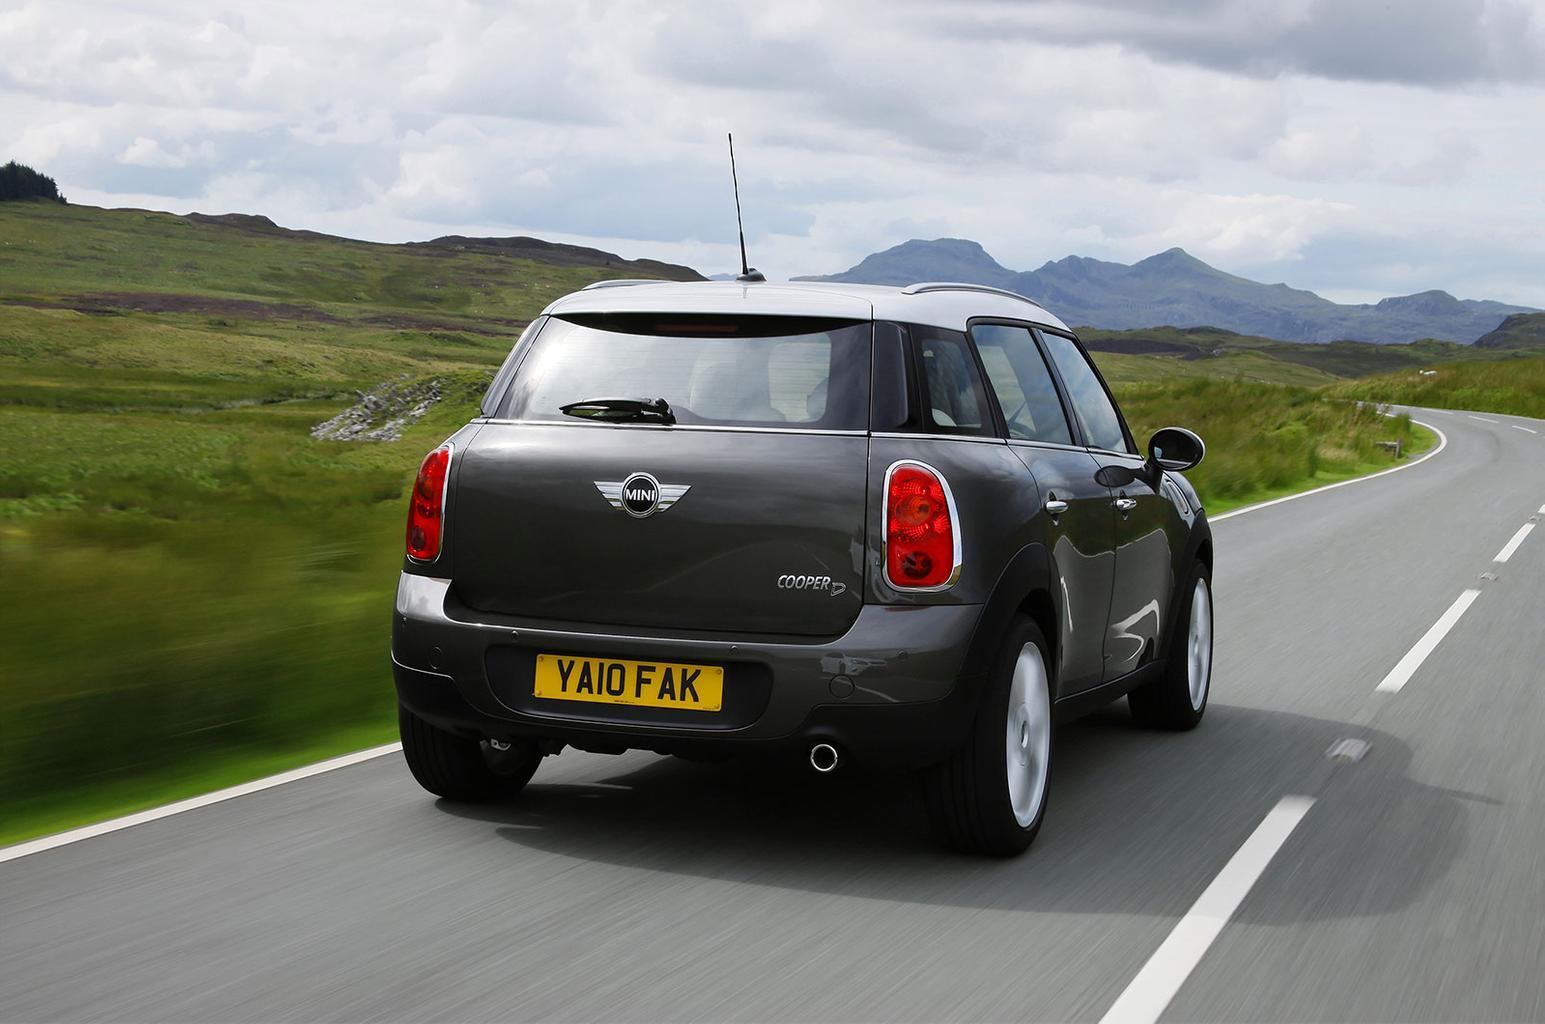 Used car of the week: Mini Countryman